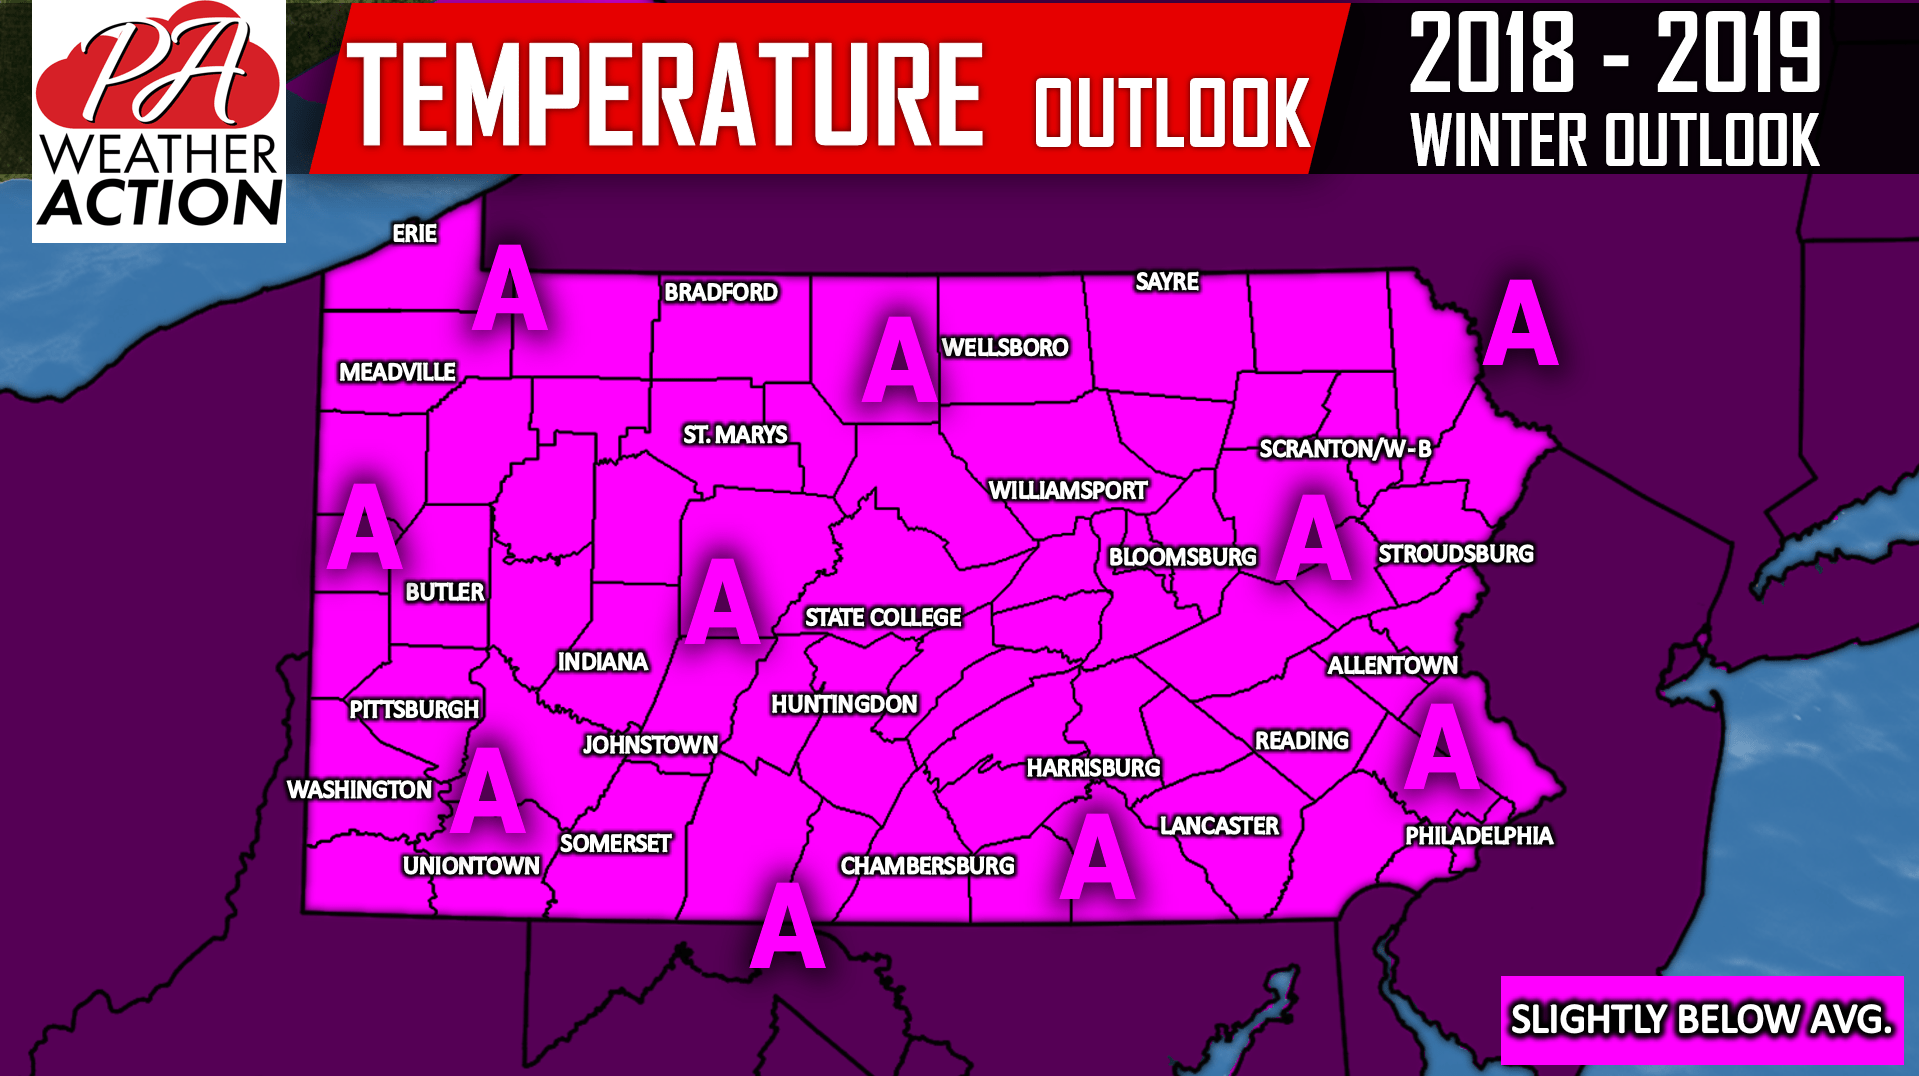 Official 2018-2019 Pennsylvania Winter Outlook – PA Weather Action